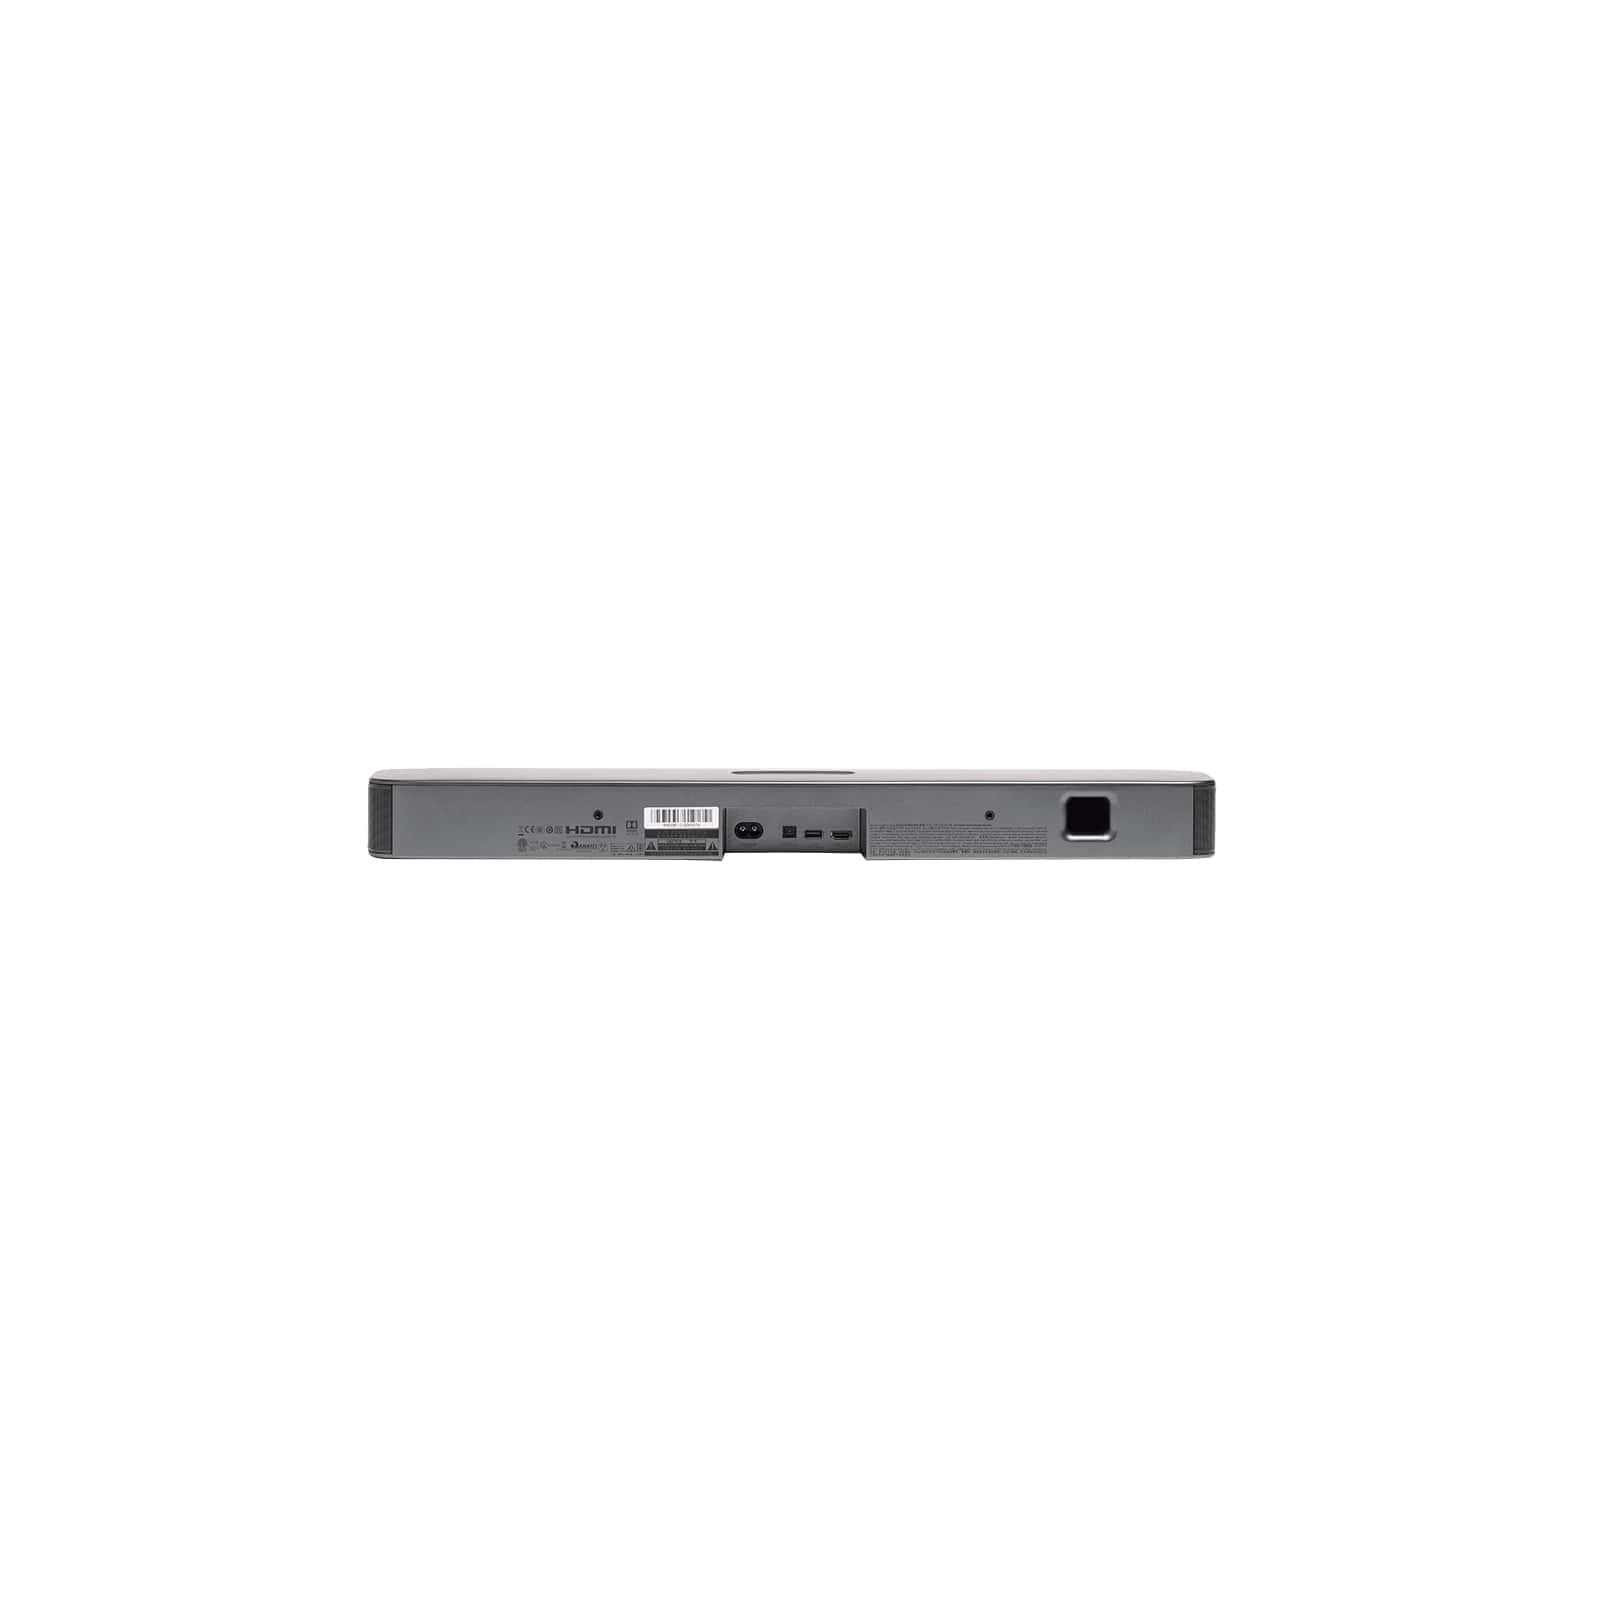 Soundbar JBL Bar 2.0 All-in-One Barra de Som Conexão Bluetooth HDMI Controle Remoto JBLBAR20AIOBLKBR